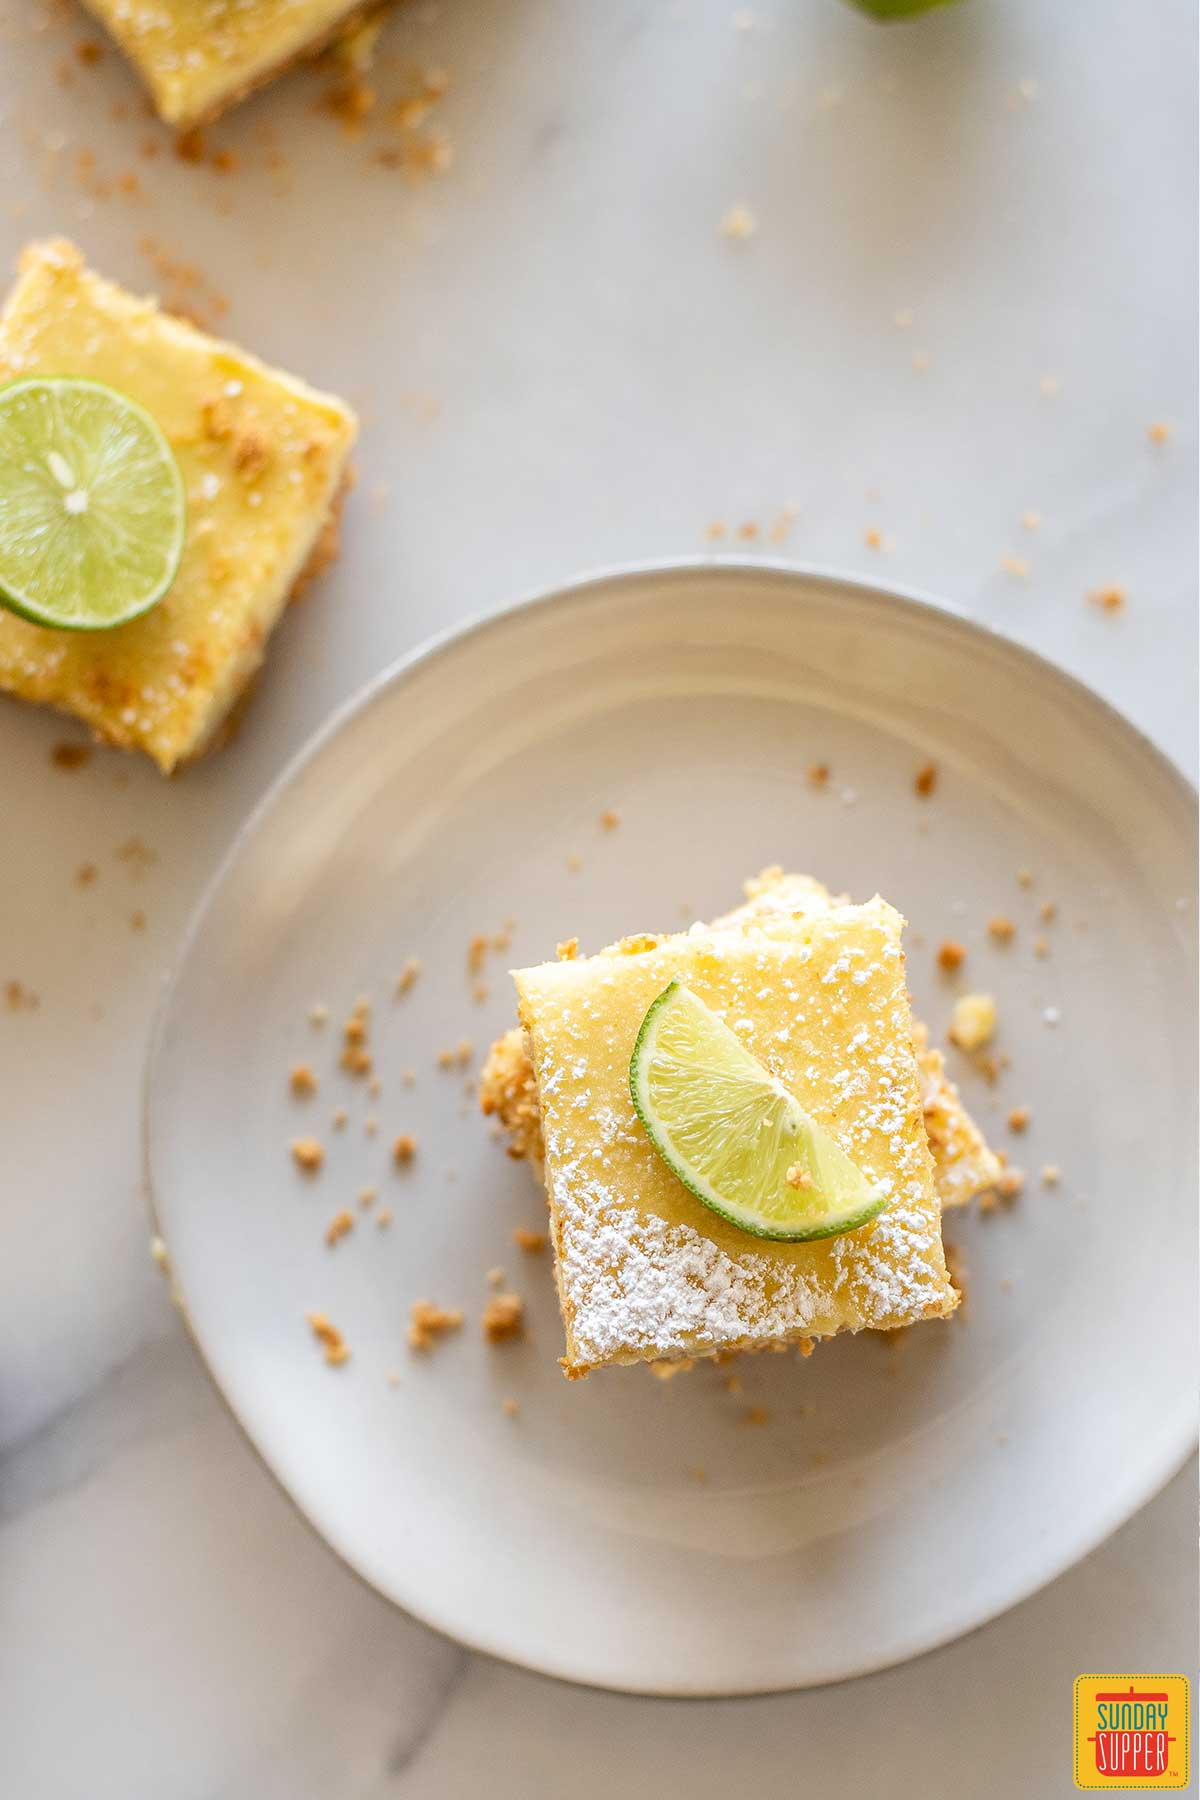 Two key lime bars on a plate next to a third beside the plate